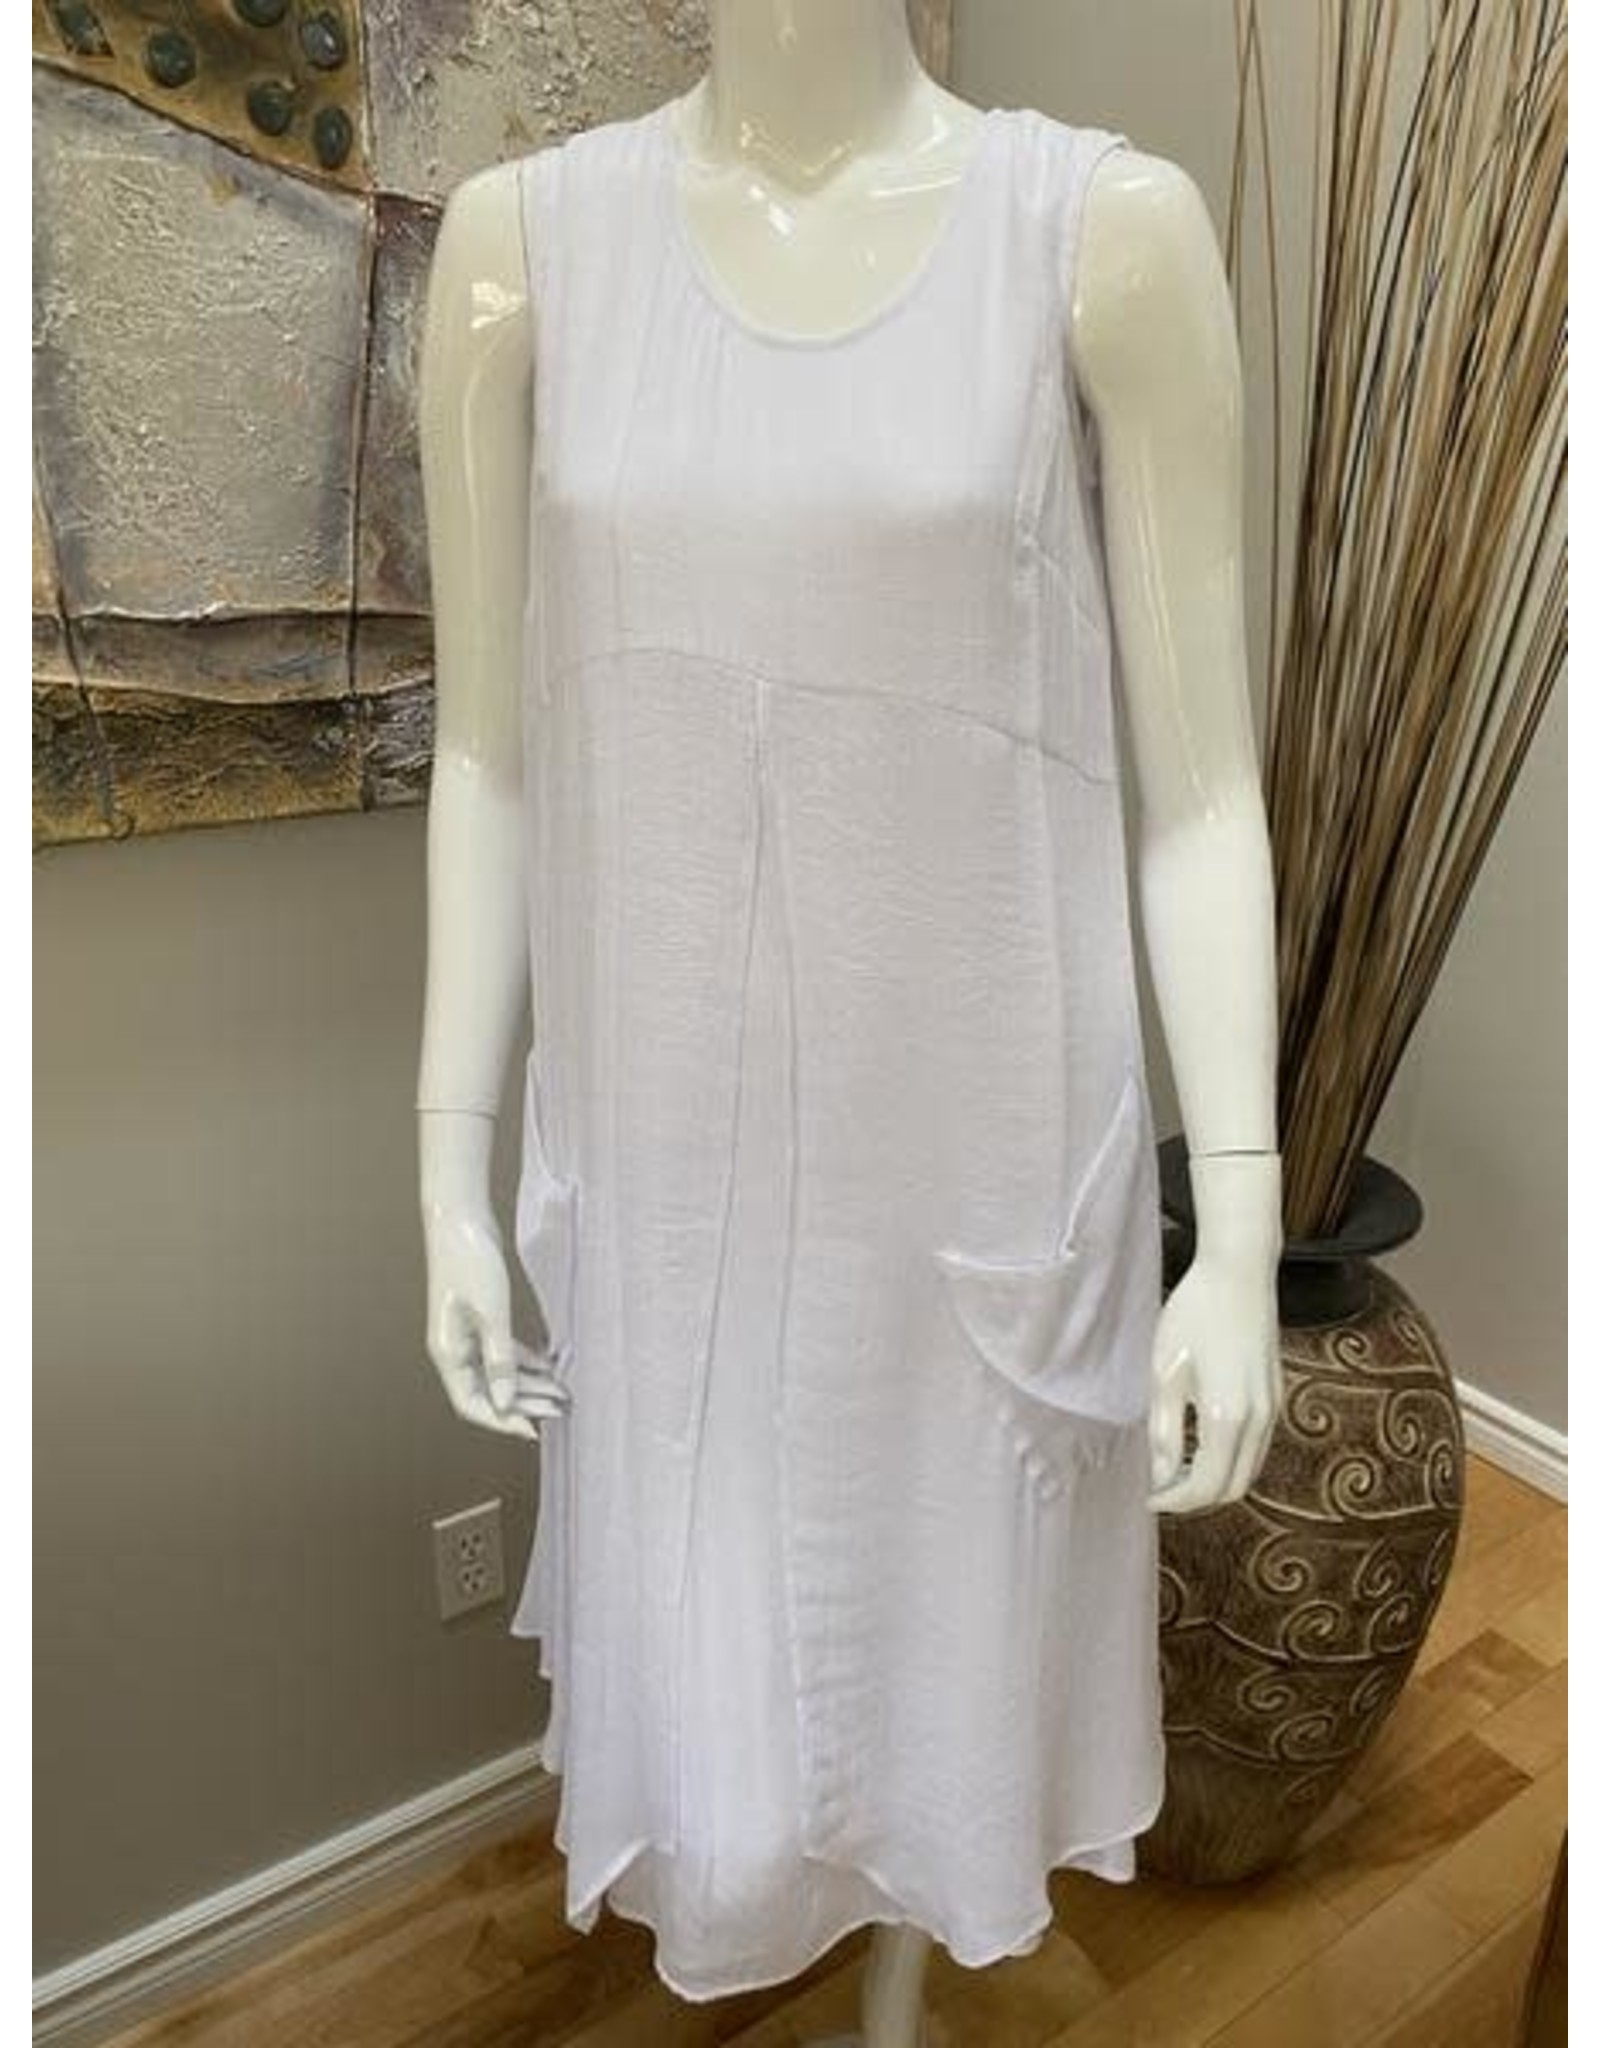 Picadilly Sleeveless Dress